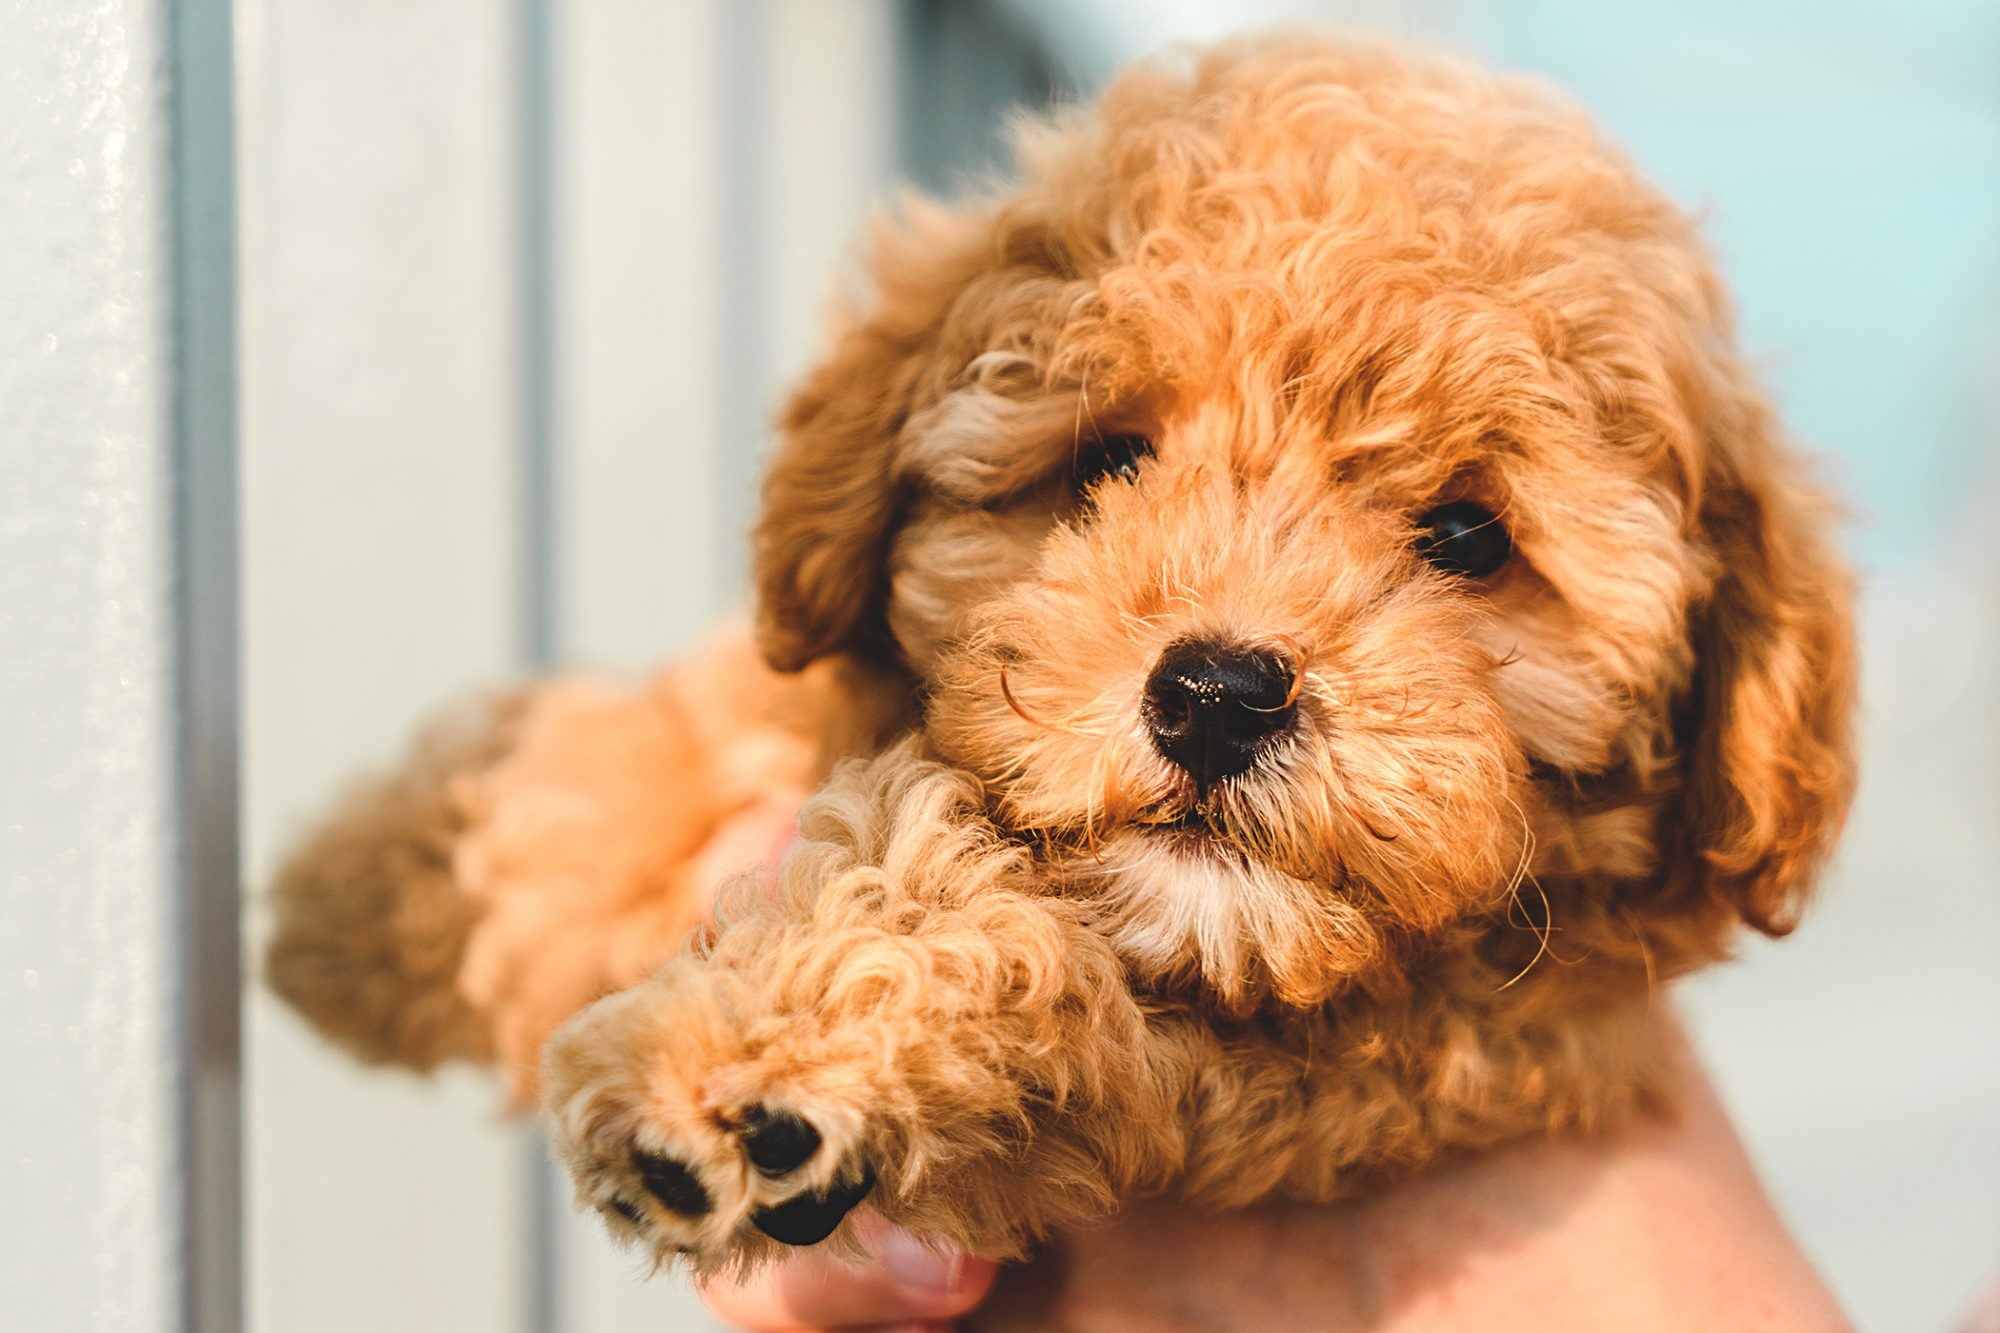 tiny golden toy poodle puppy held in owner's hands